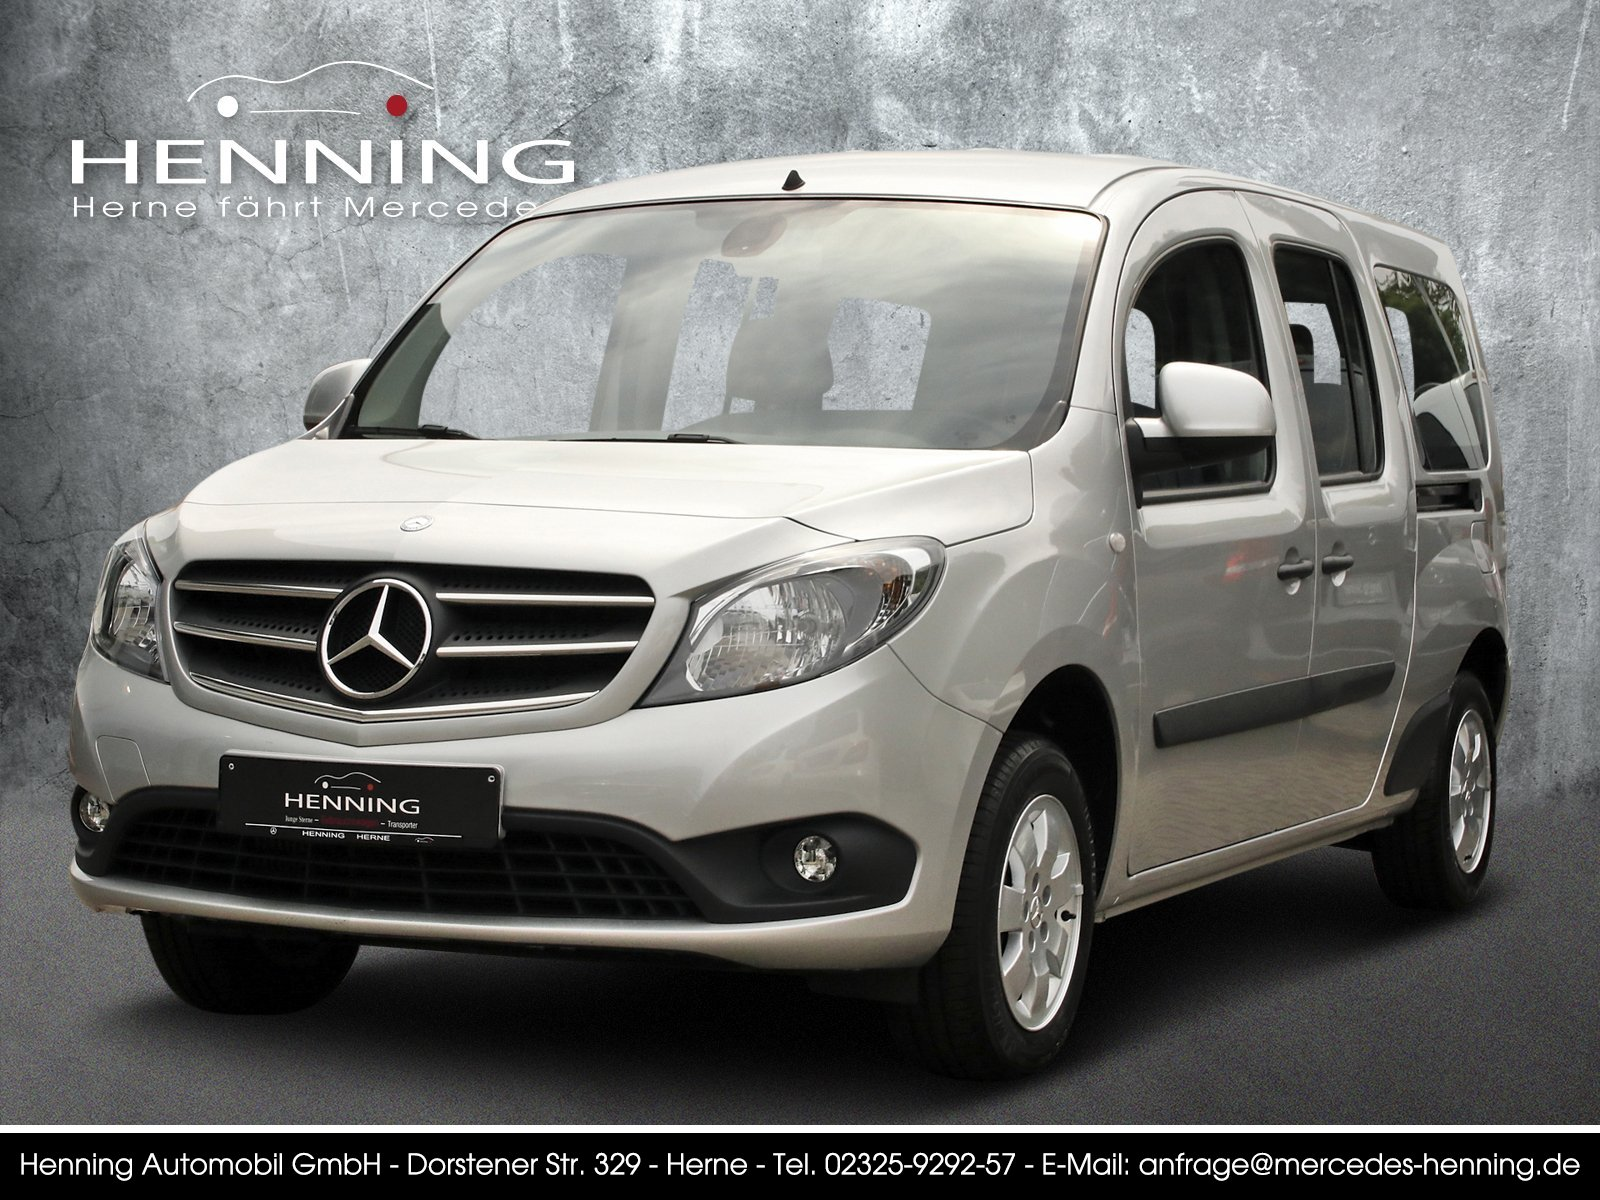 MERCEDES-BENZ 111 Citan Tourer EDITION Extralang